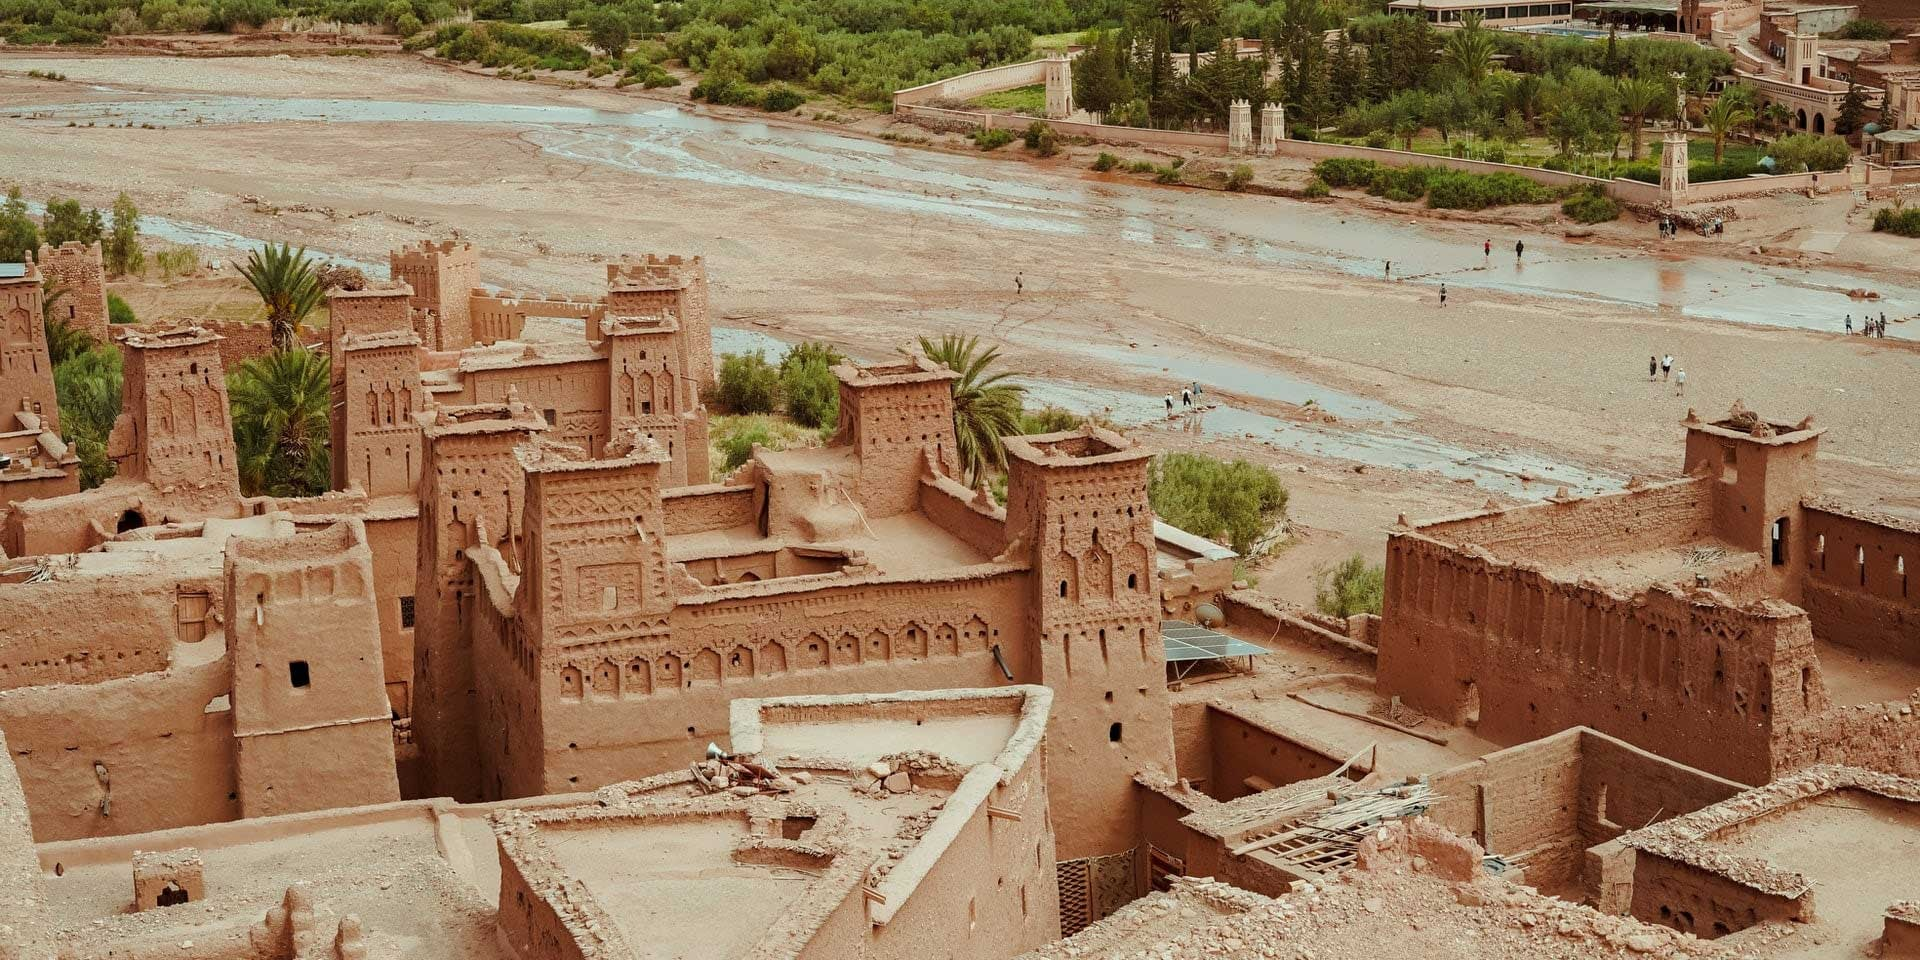 Tours and excursions in Morocco